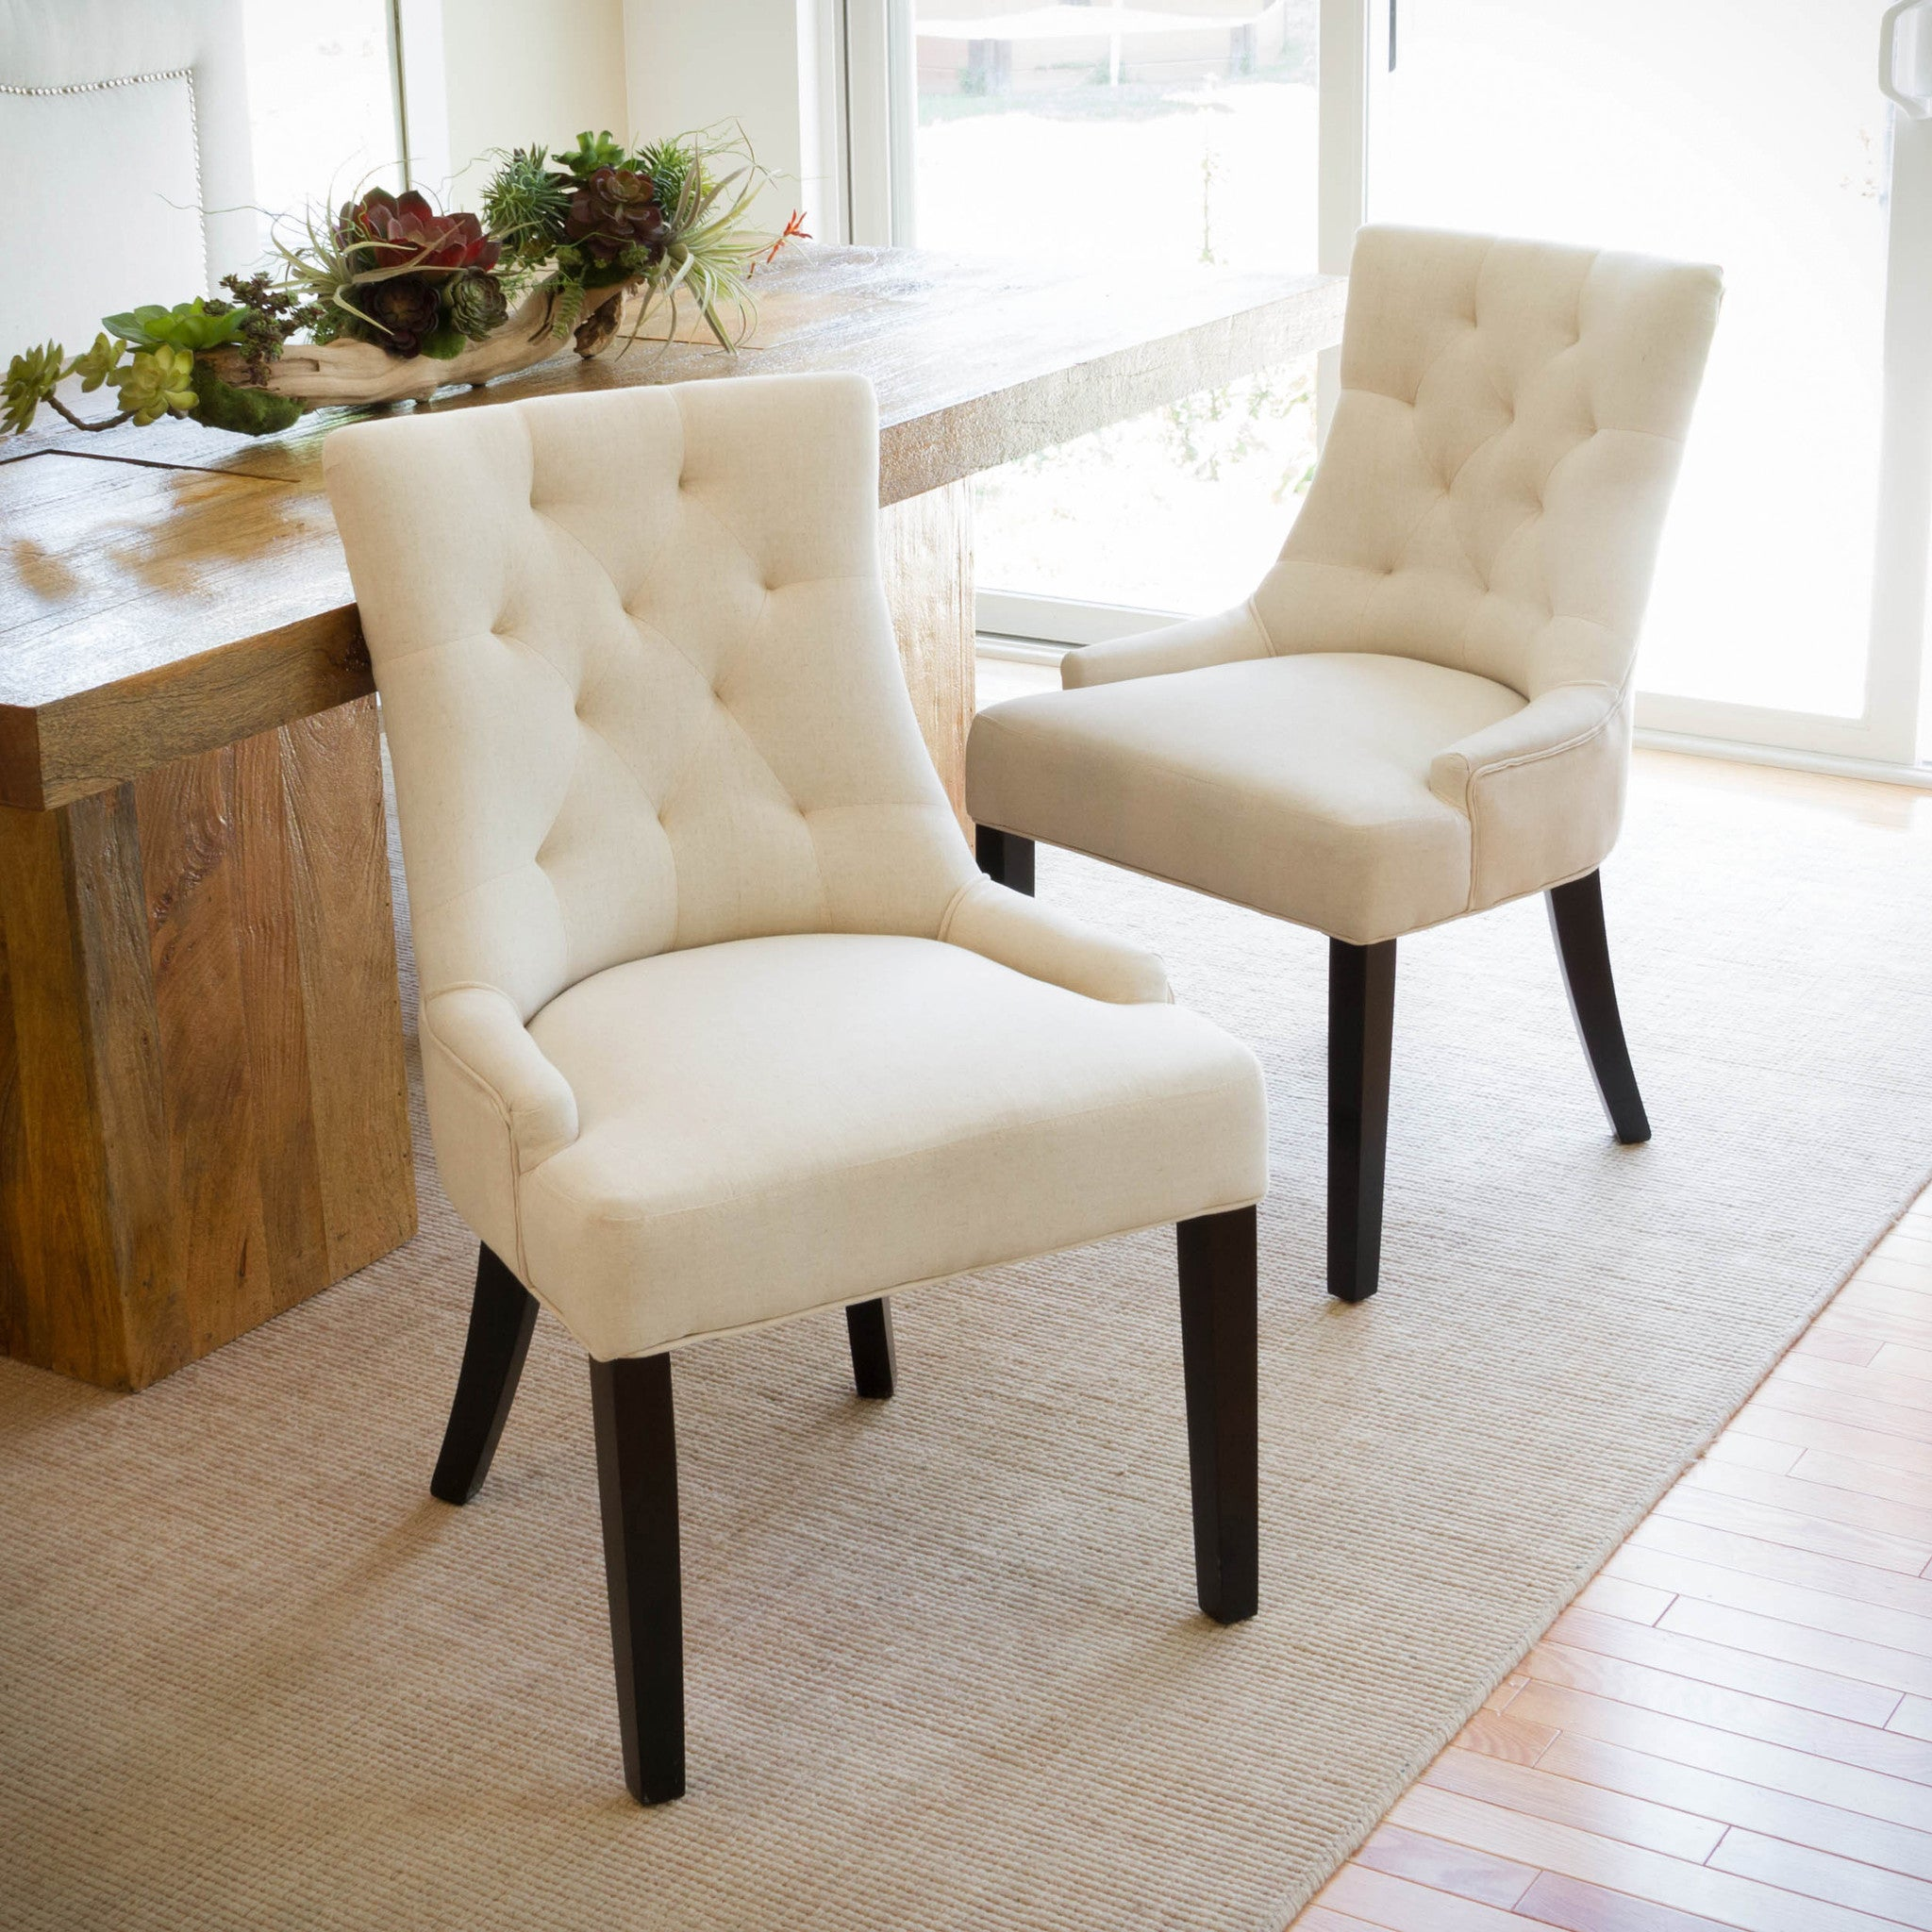 Colourful accent chairs - Janelle Beige Tufted Fabric Dining Chairs Set Of 2